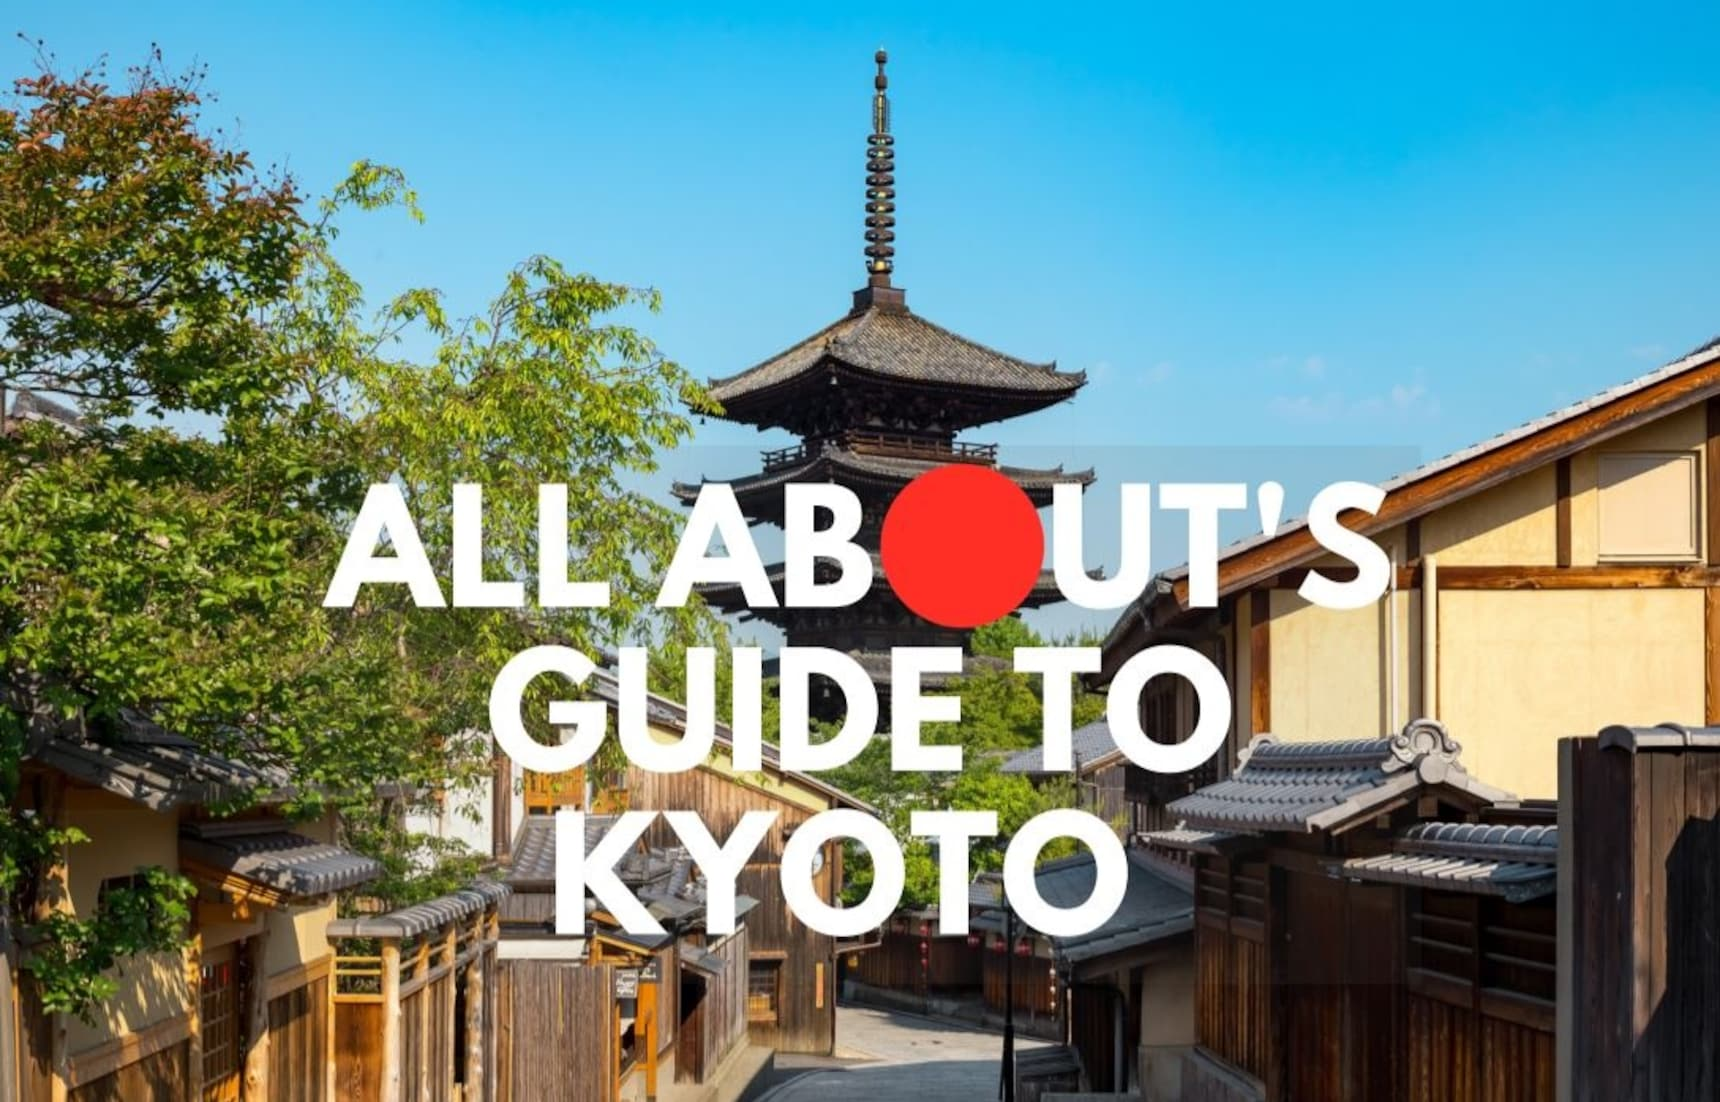 All About's Guide to Kyoto